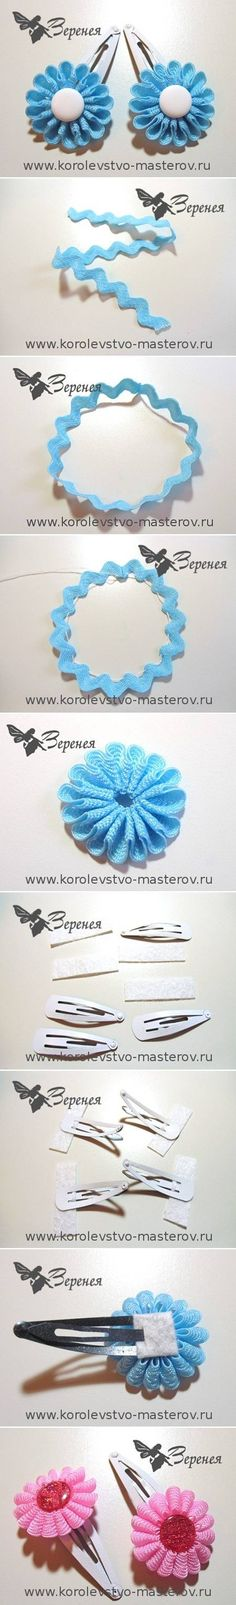 DIY Braid Flower DIY Braid Flower by catrulz